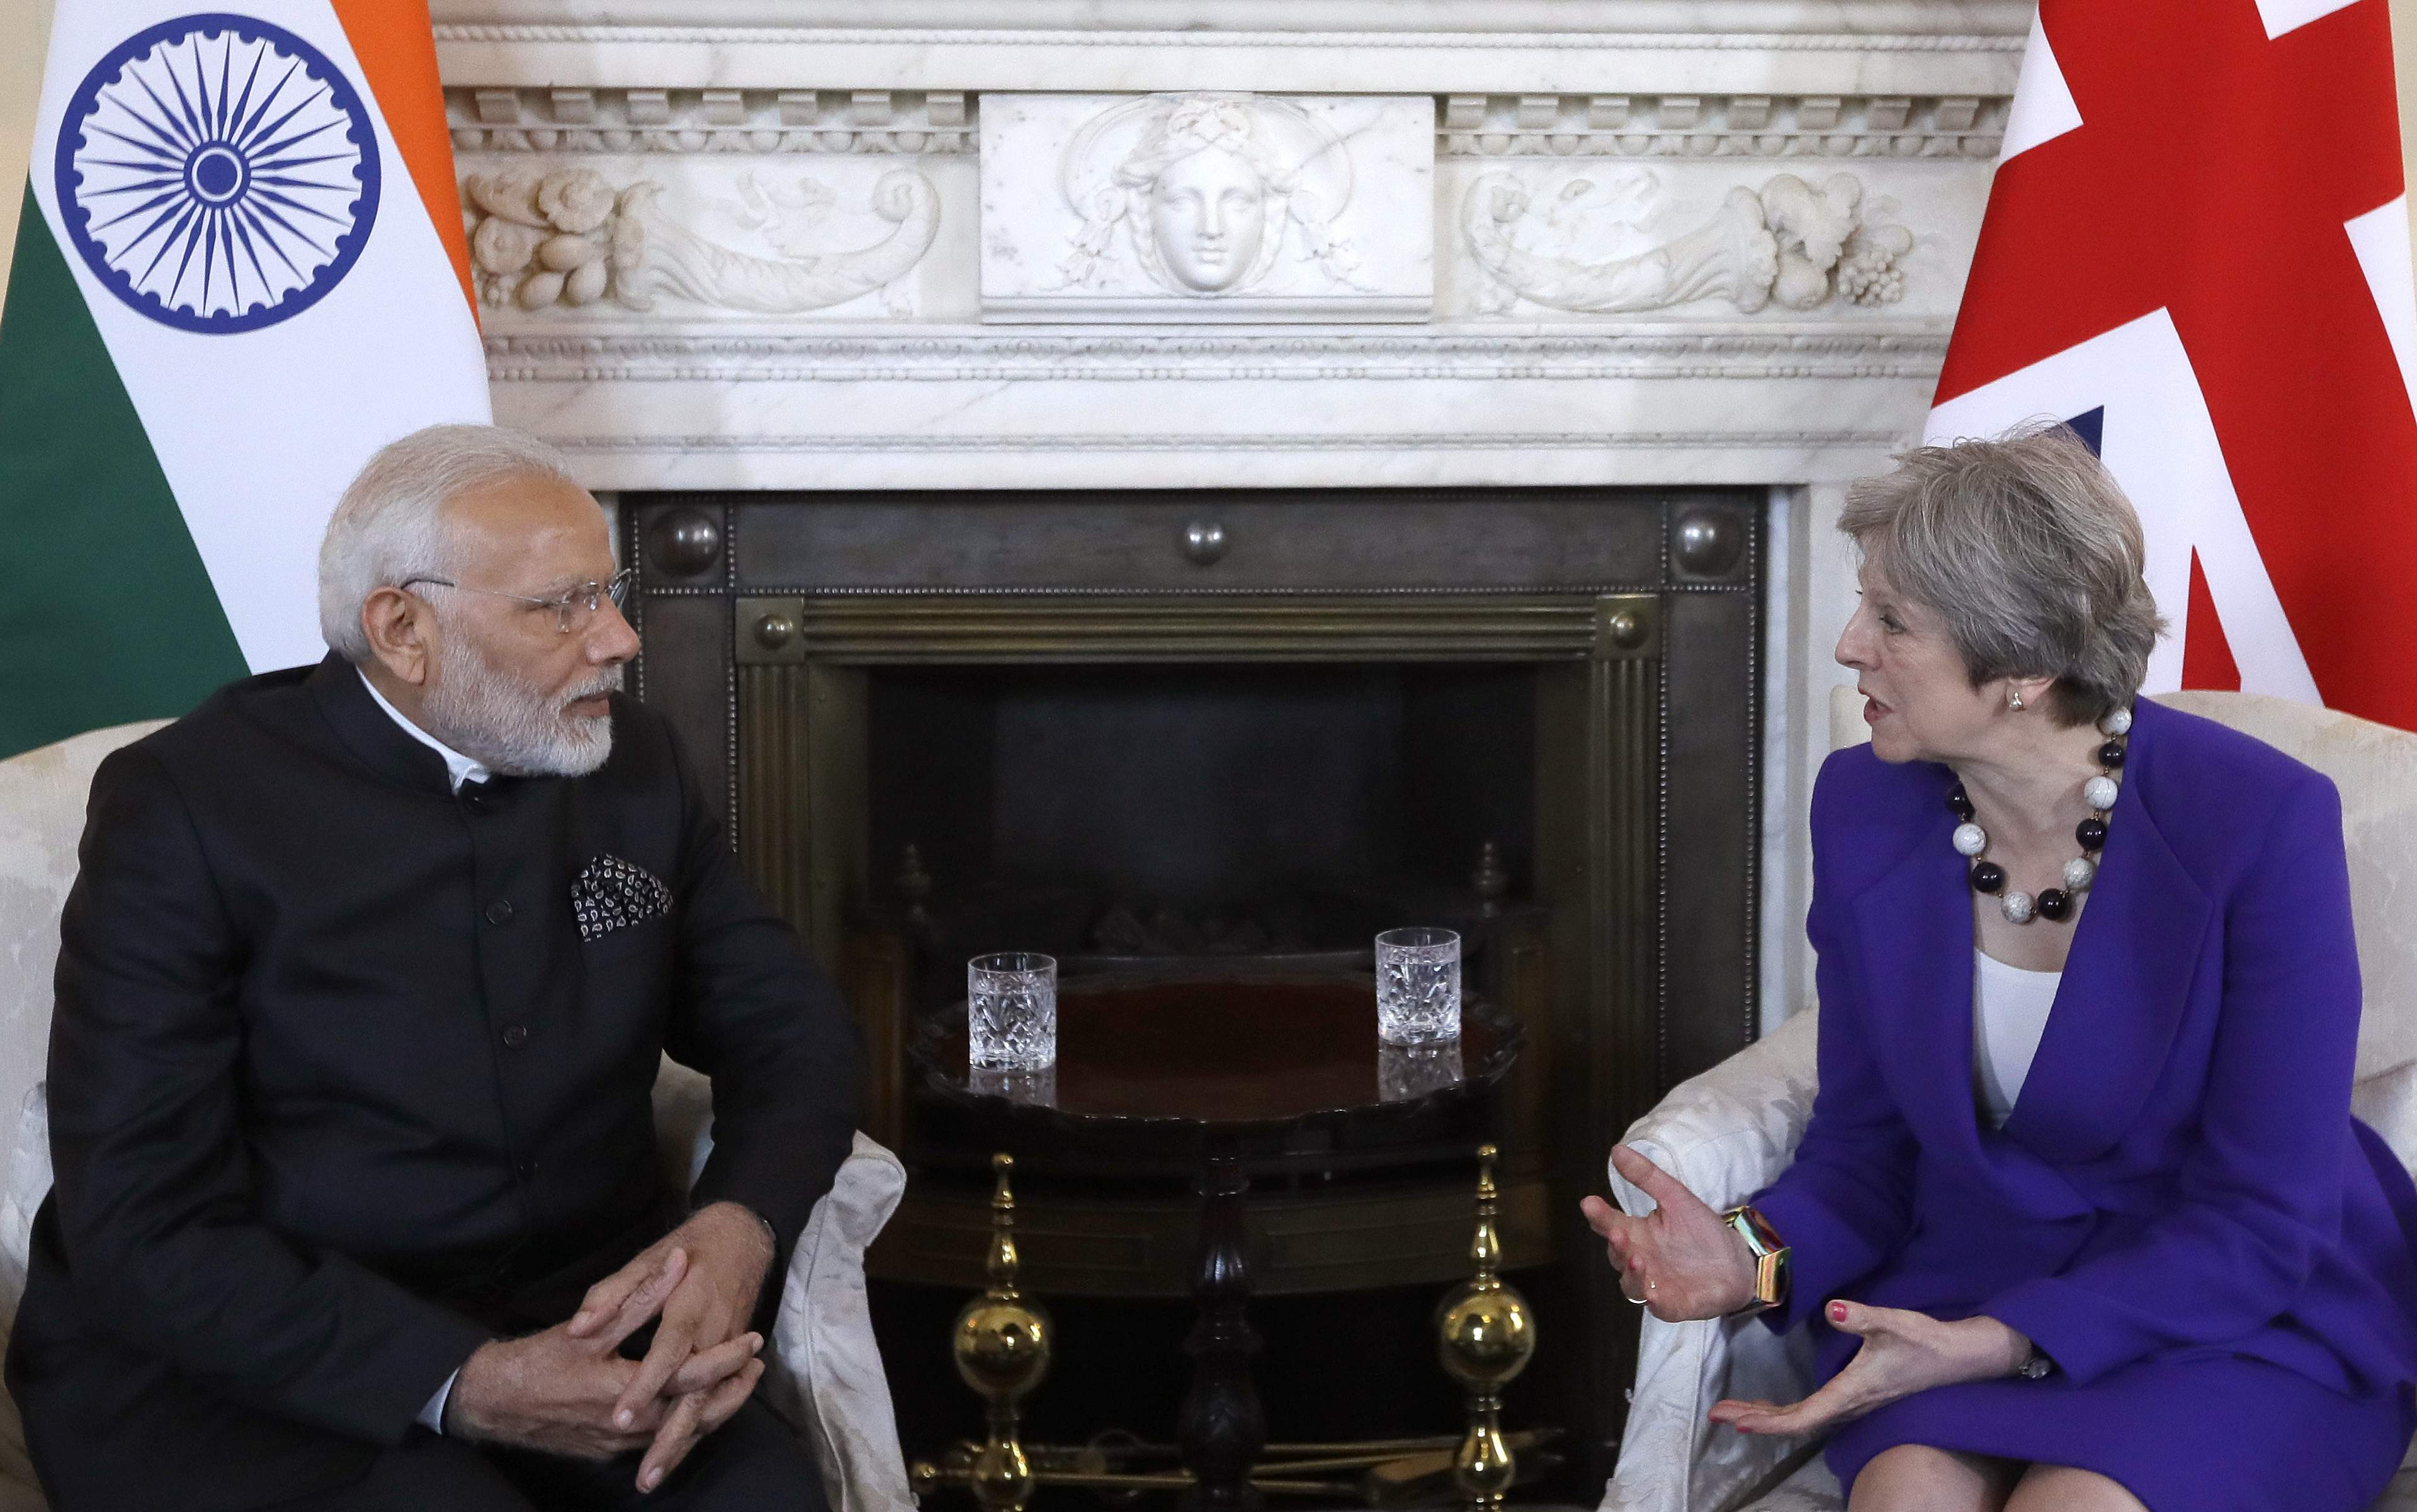 PM Modi meets Theresa May